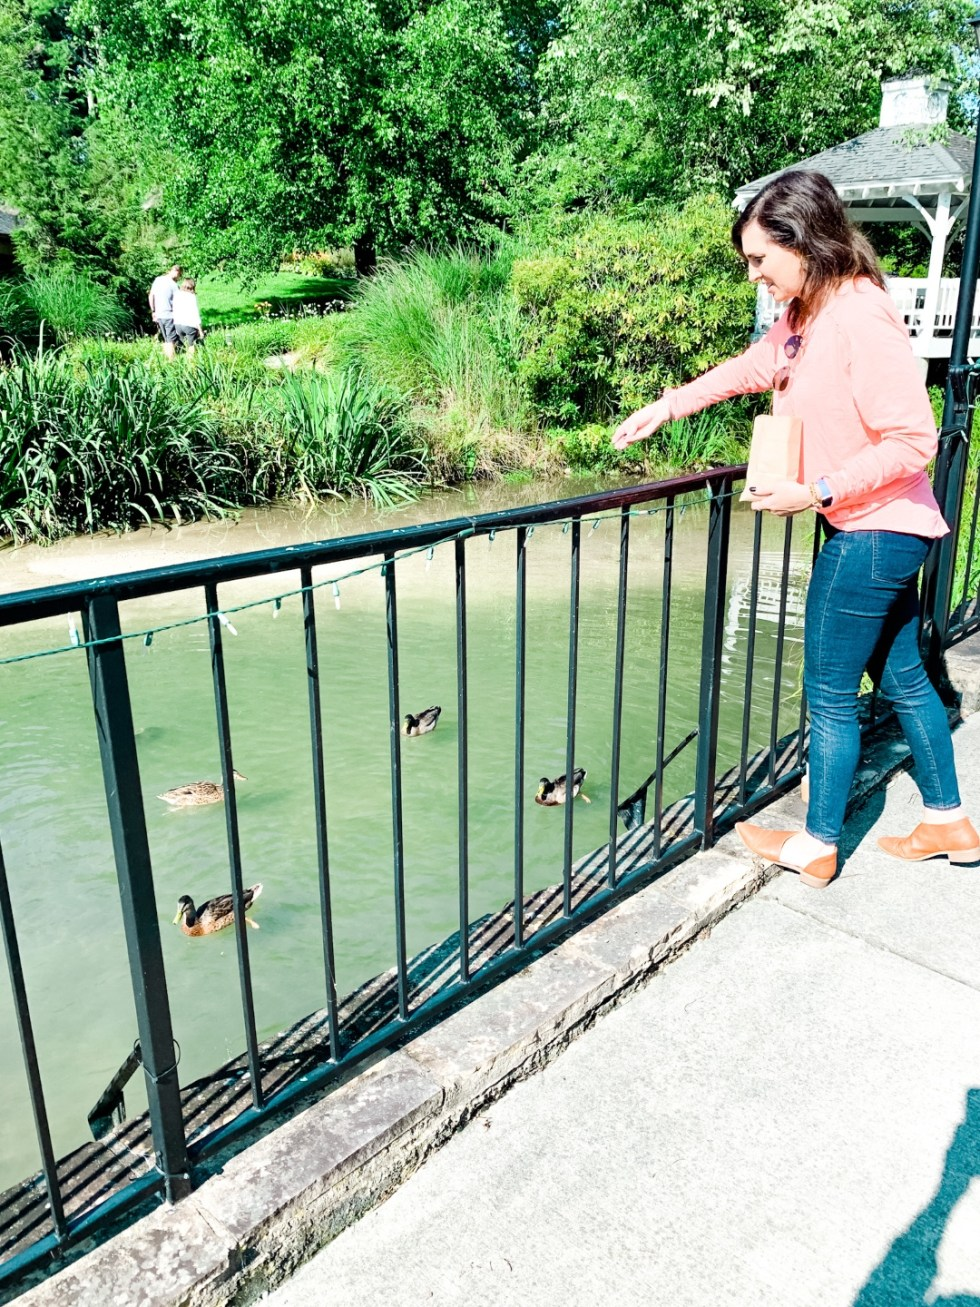 Meadow Brook Inn Blowing Rock by popular N.C. travel blog, I'm Fixin' To: image of a woman feeding ducks at Meadow Brook Inn.